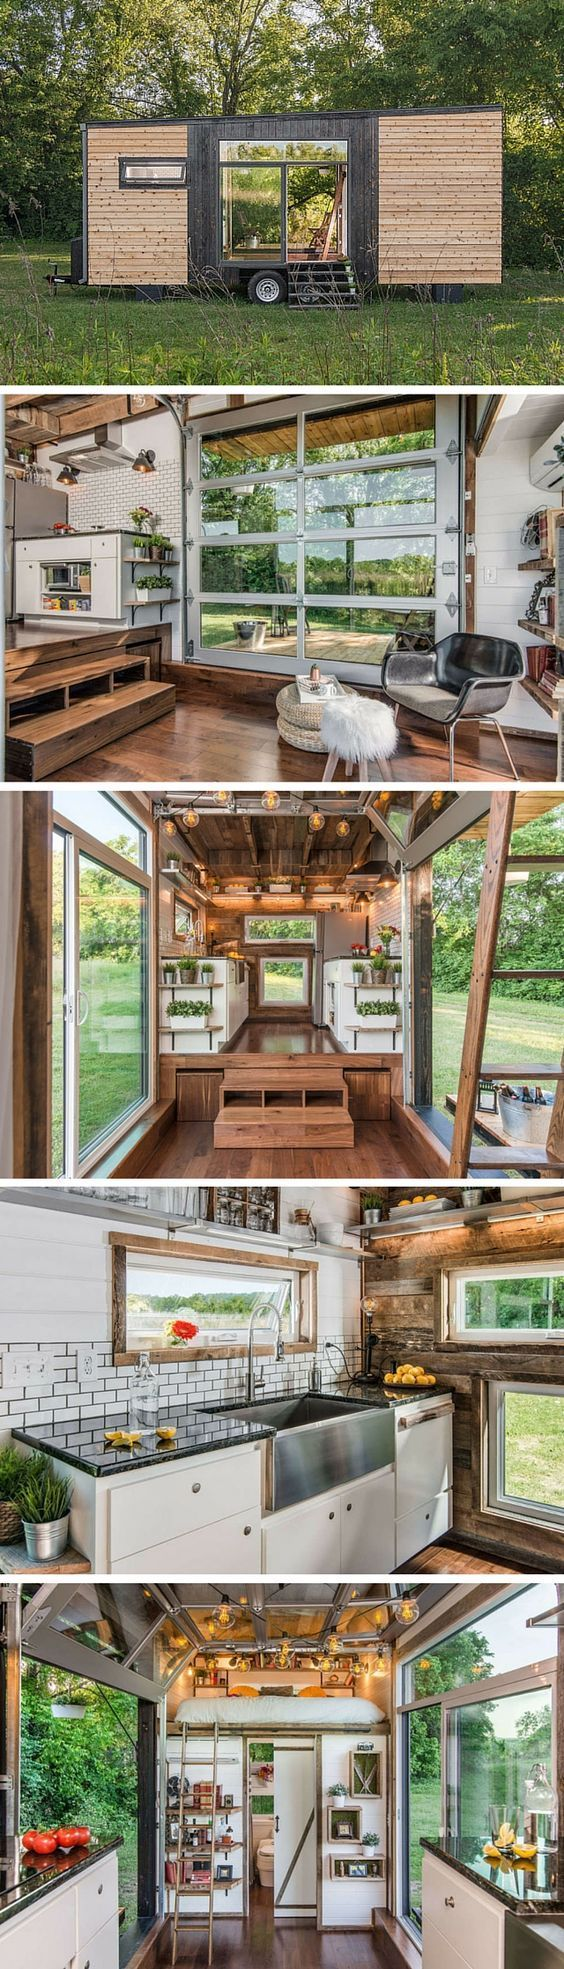 Best 25 Best Tiny Houses 2017 https://fancydecors.co/2018/01/26/25-best-tiny-houses-2017/ The colder the house is, consequently, the longer your furnace will run to accomplish the temperature you want